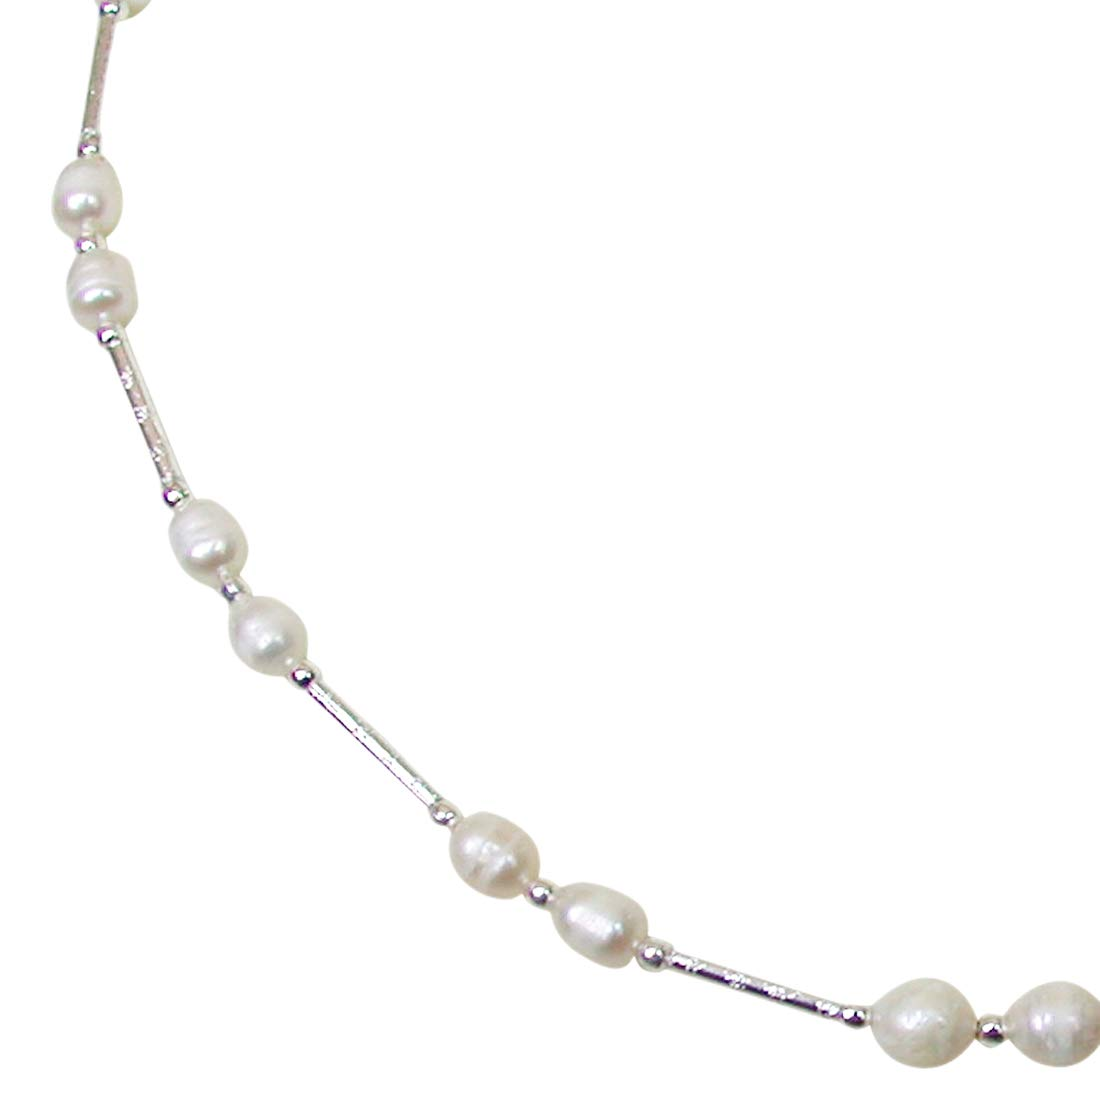 Flambeau - Single Line Real Freshwater Pearl & Silver Plated Pipe Necklace for Women SN206